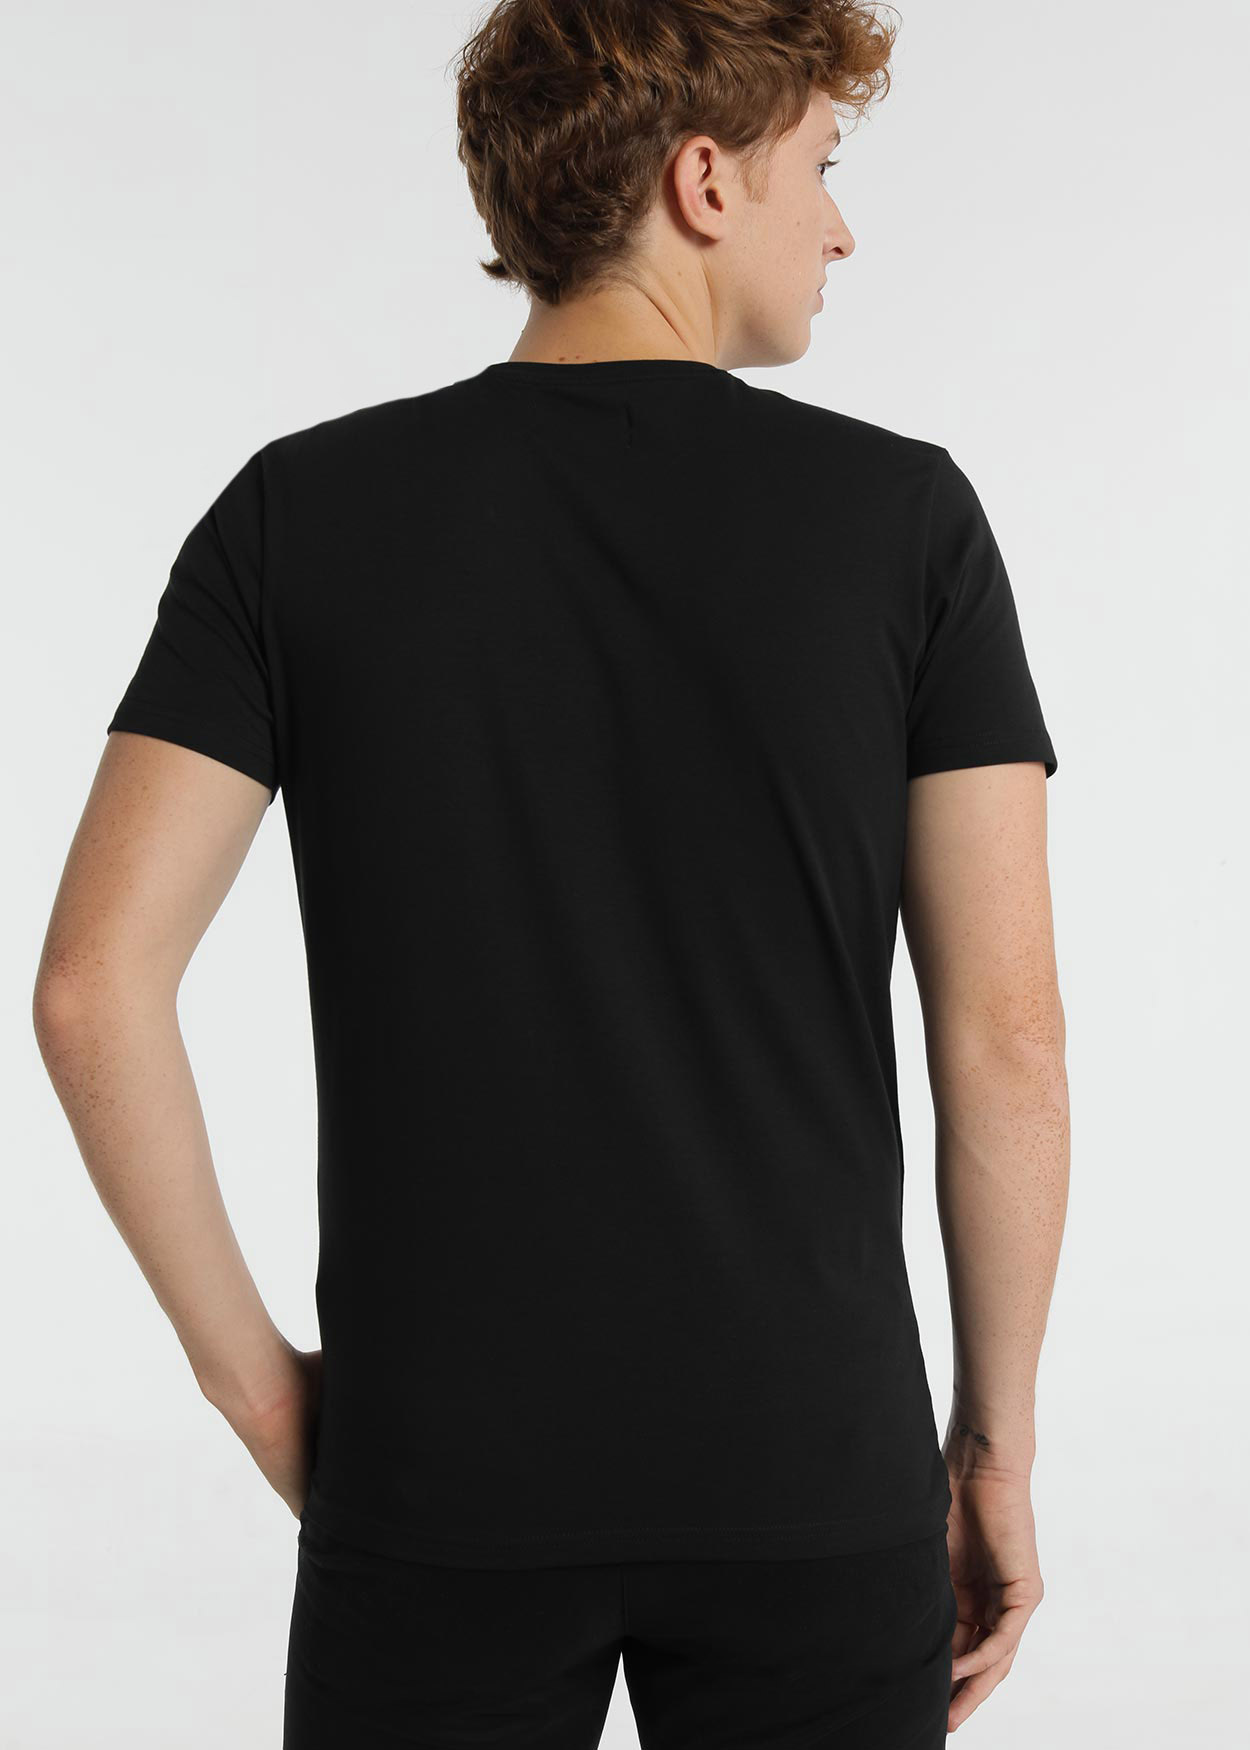 Six Valves Basic TShirt Black Back